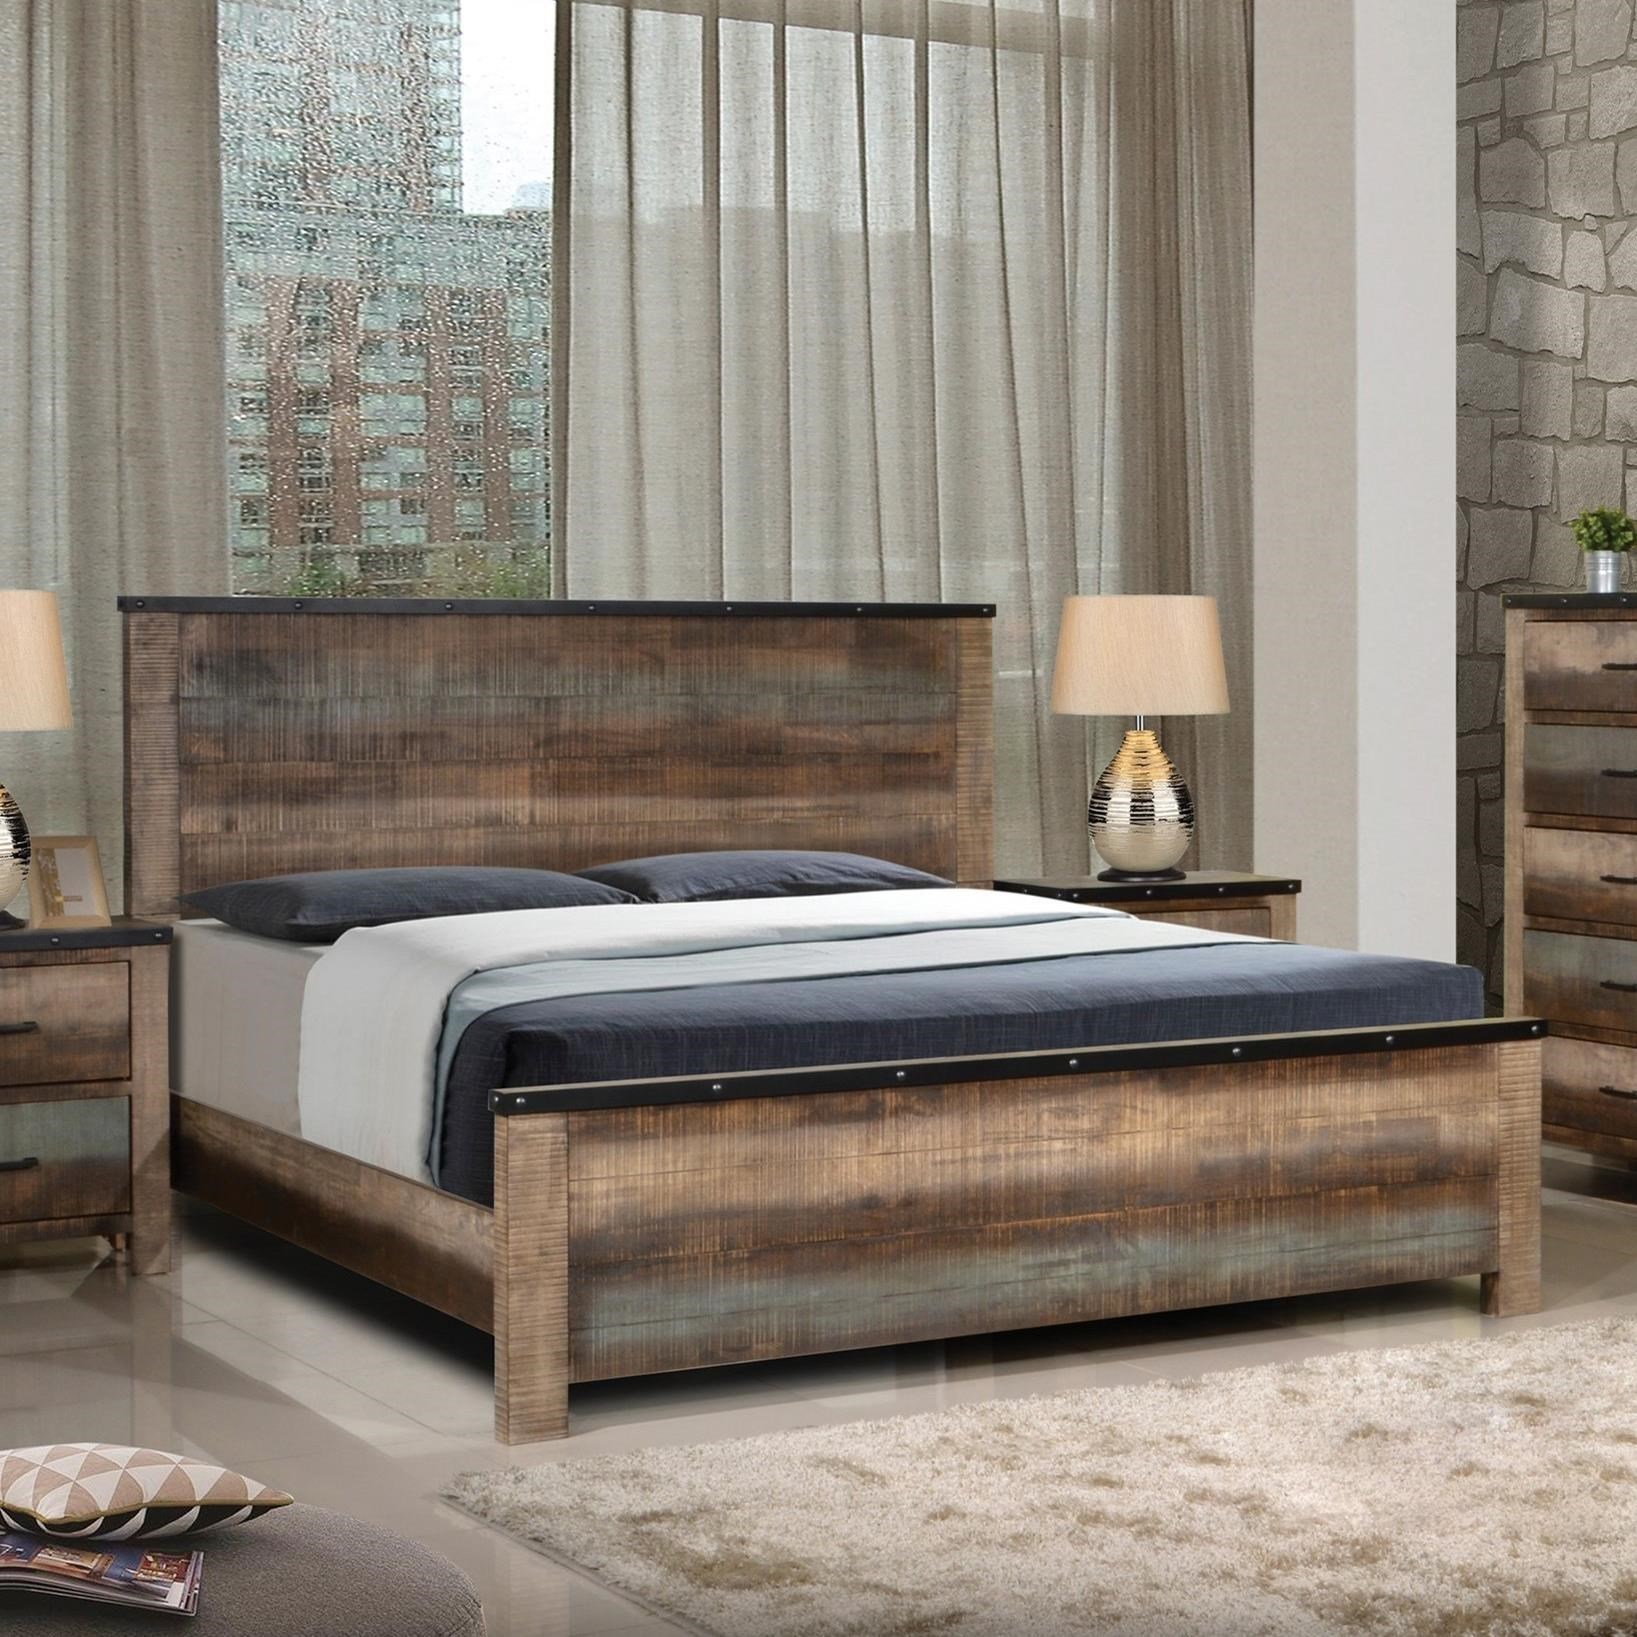 Beau Bed Shown May Not Represent Size Indicated